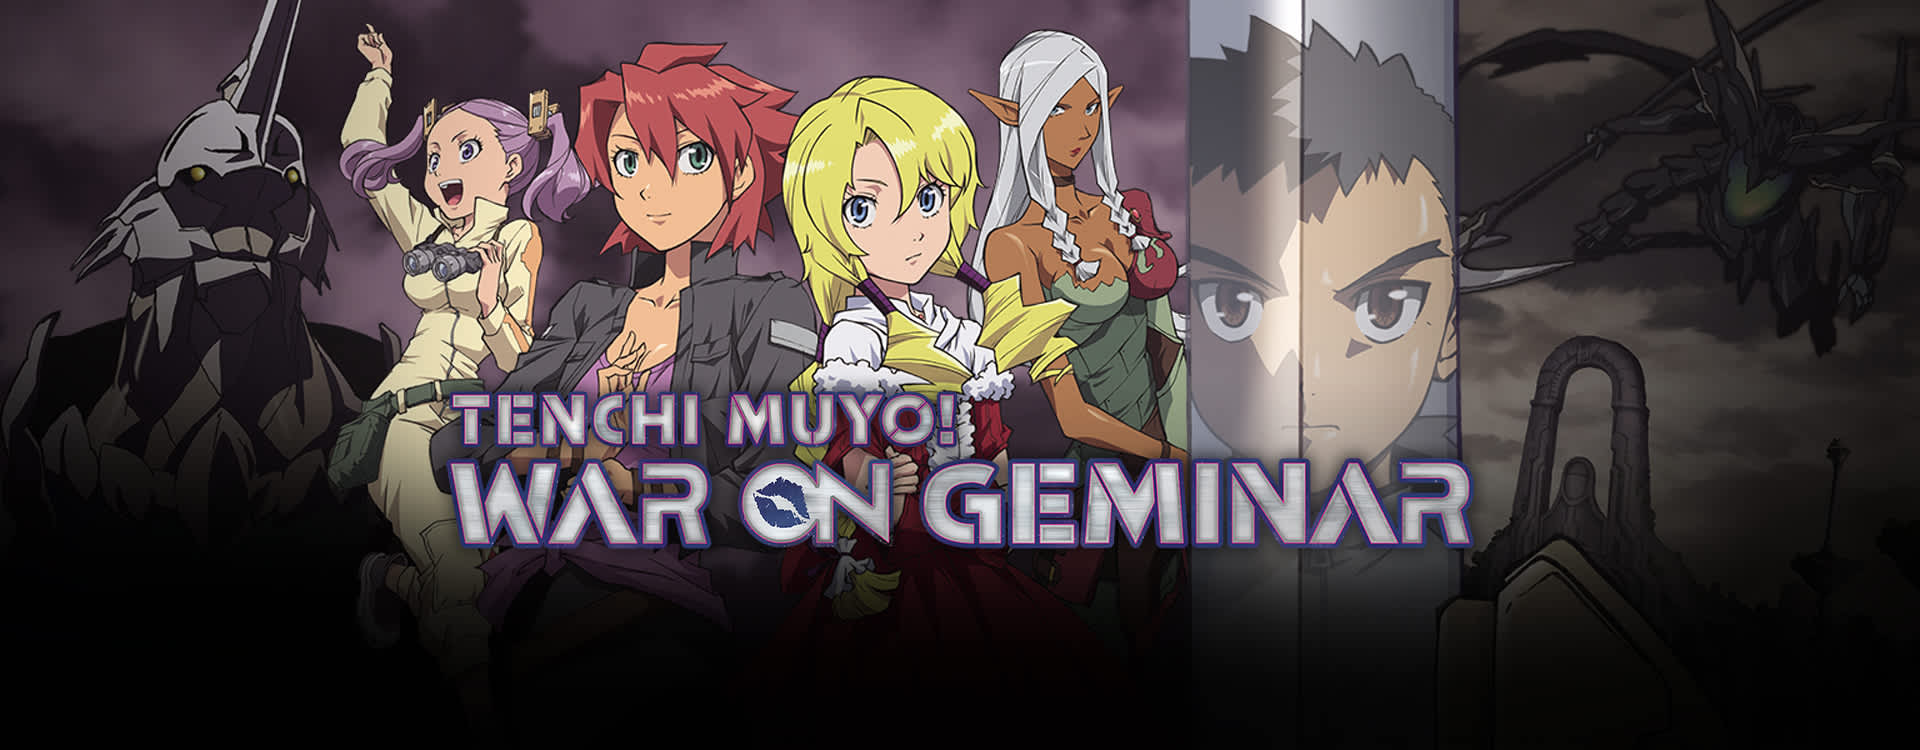 Watch Tenchi Muyo! War On Geminar Episodes Sub & Dub